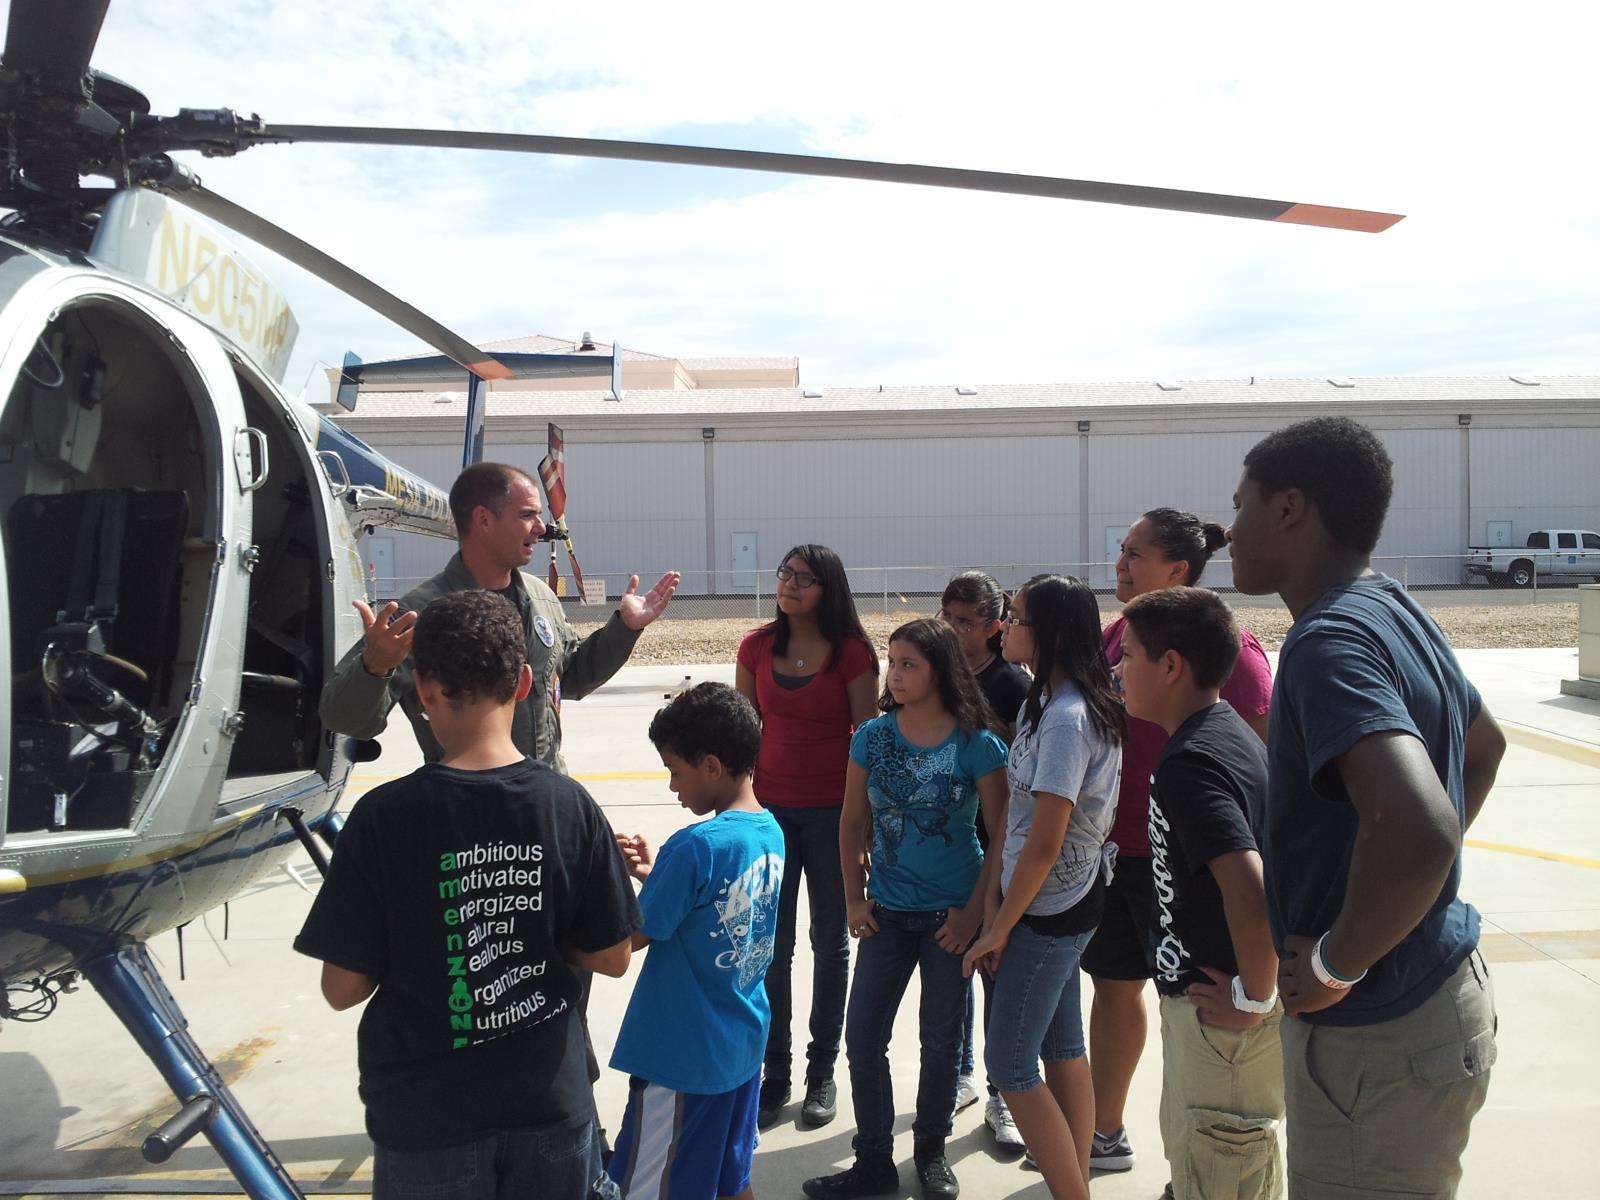 Tours, Tour Groups, Airport Tours, Mesa Police